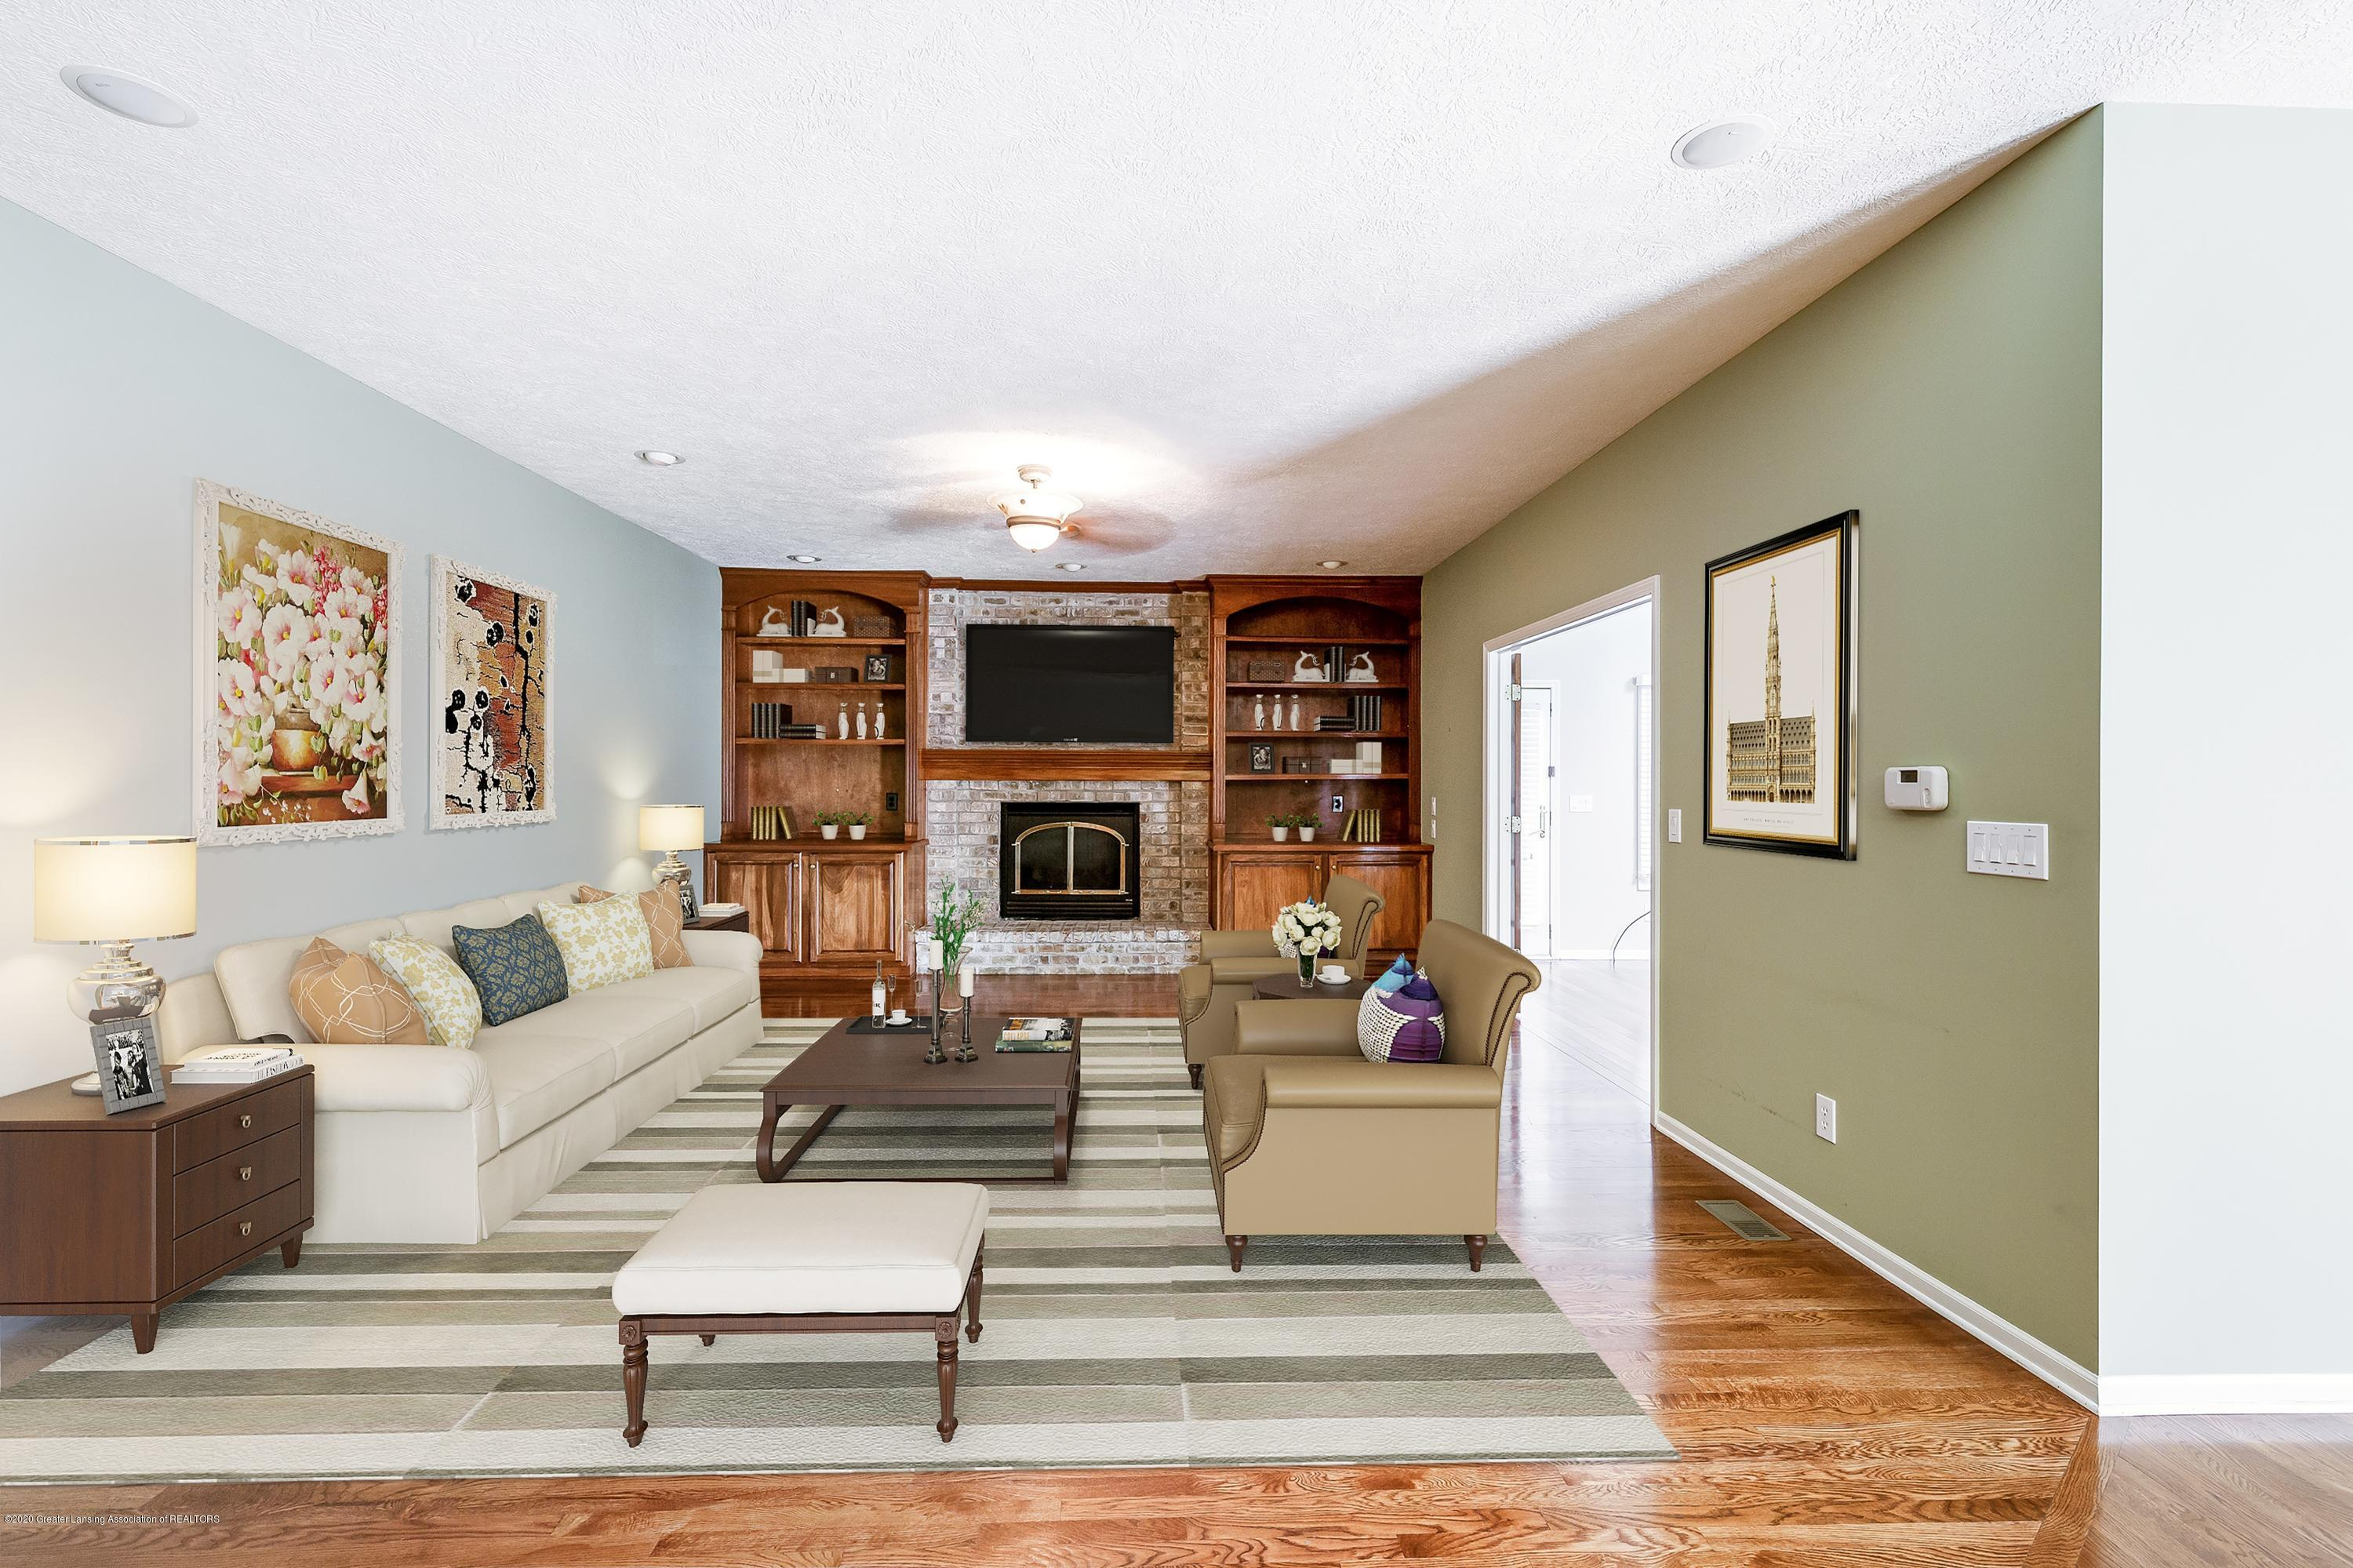 2530 Hummingbird Ln - Living Room - 8